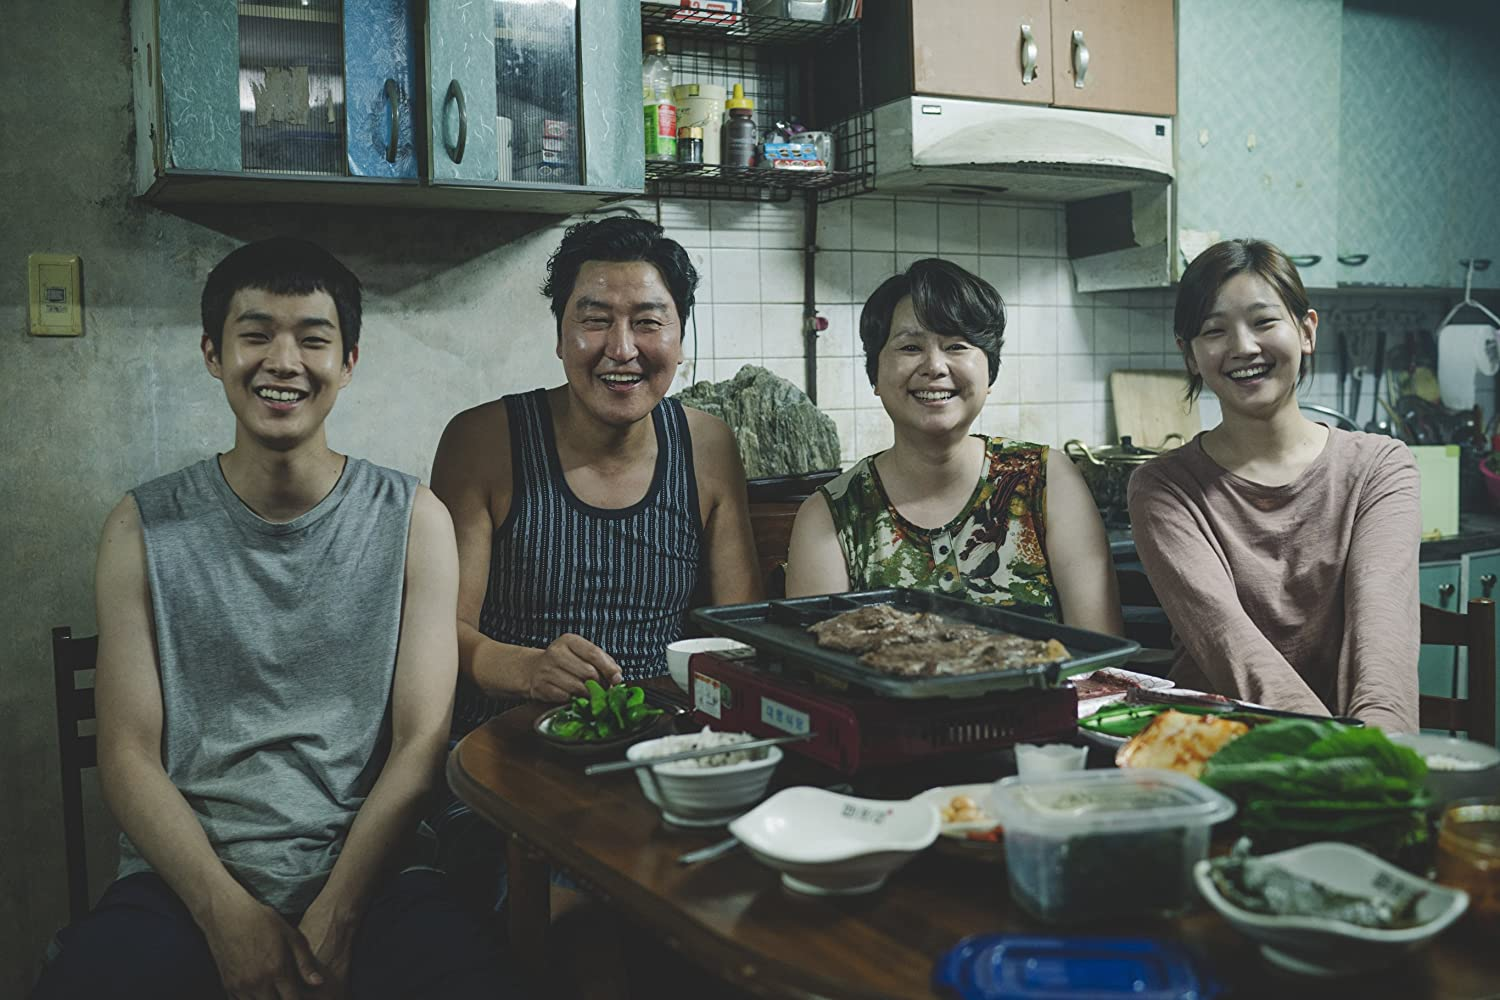 Kang-ho Song, Hye-jin Jang, Woo-sik Choi, and So-dam Park in Gisaengchung (2019)